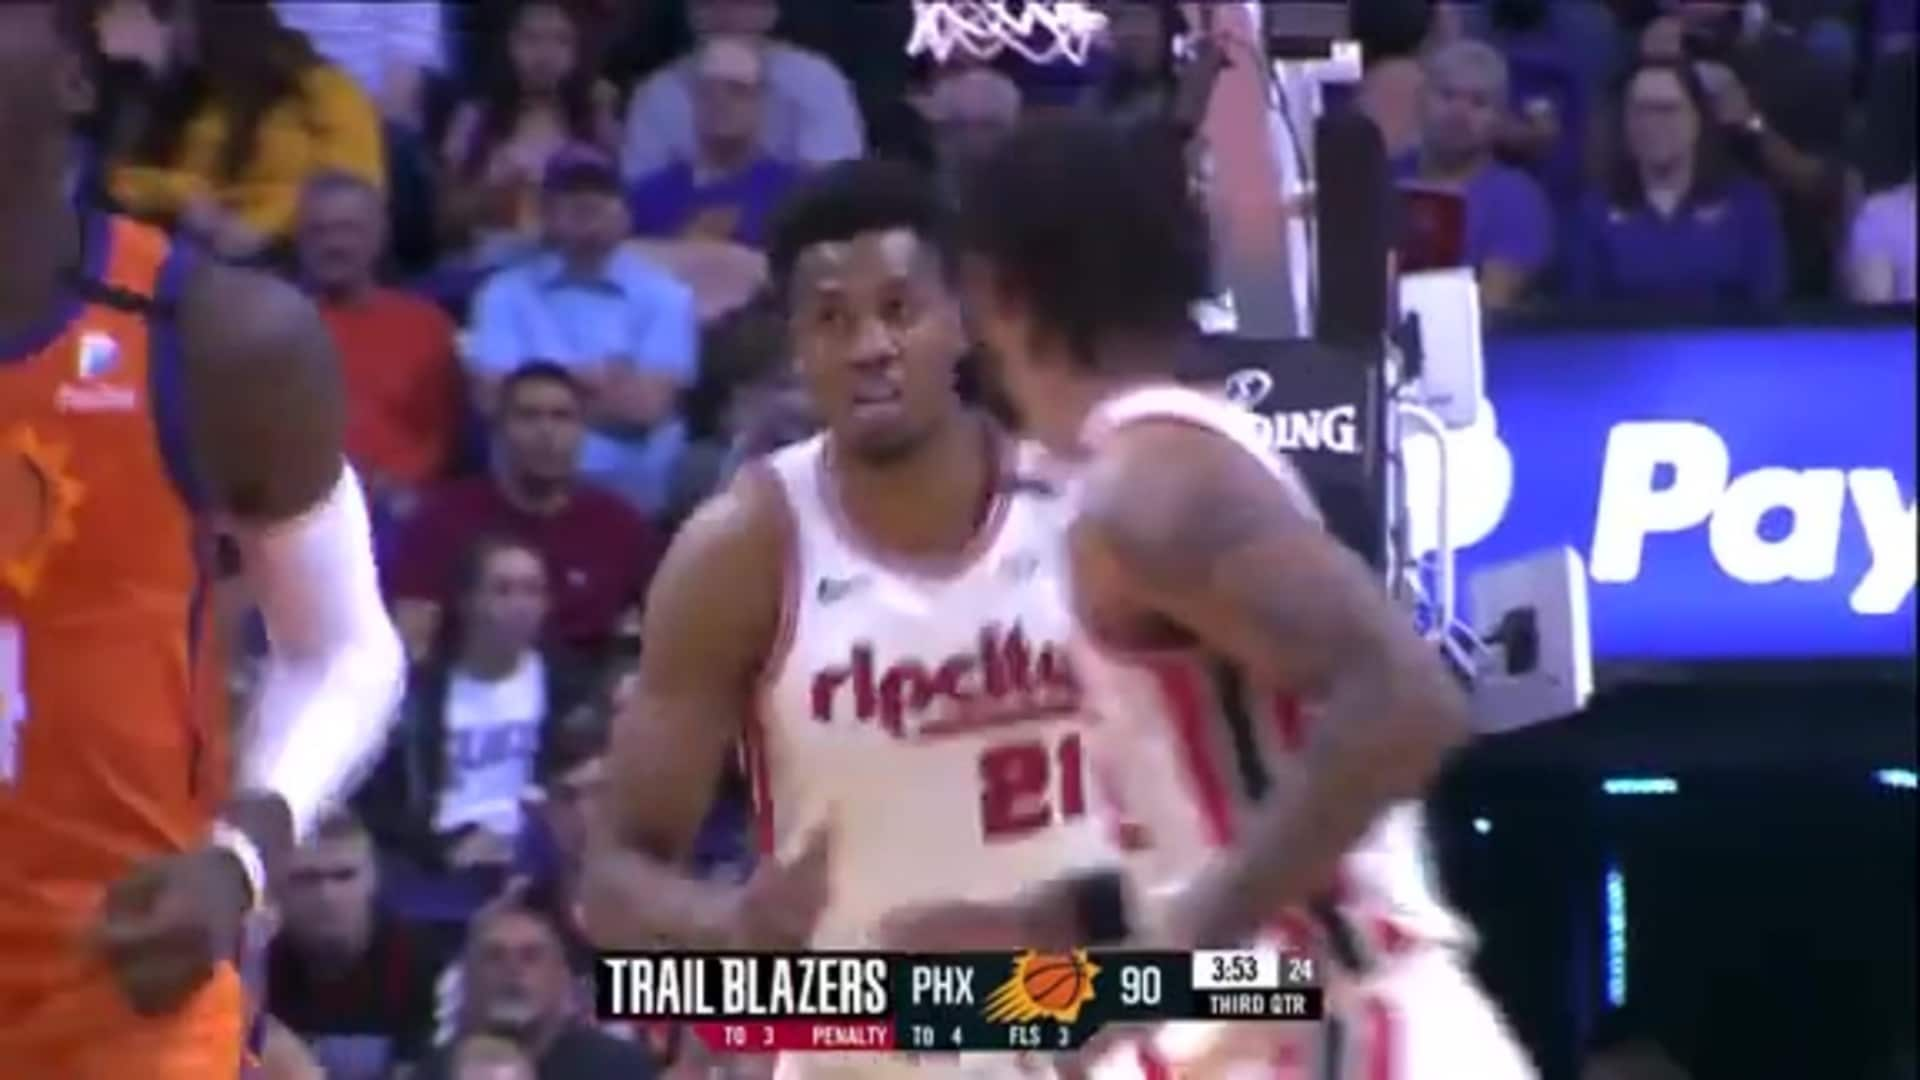 Hassan Whiteside (23 PTS, 20 REB, 4 BLK) Highlights at Suns